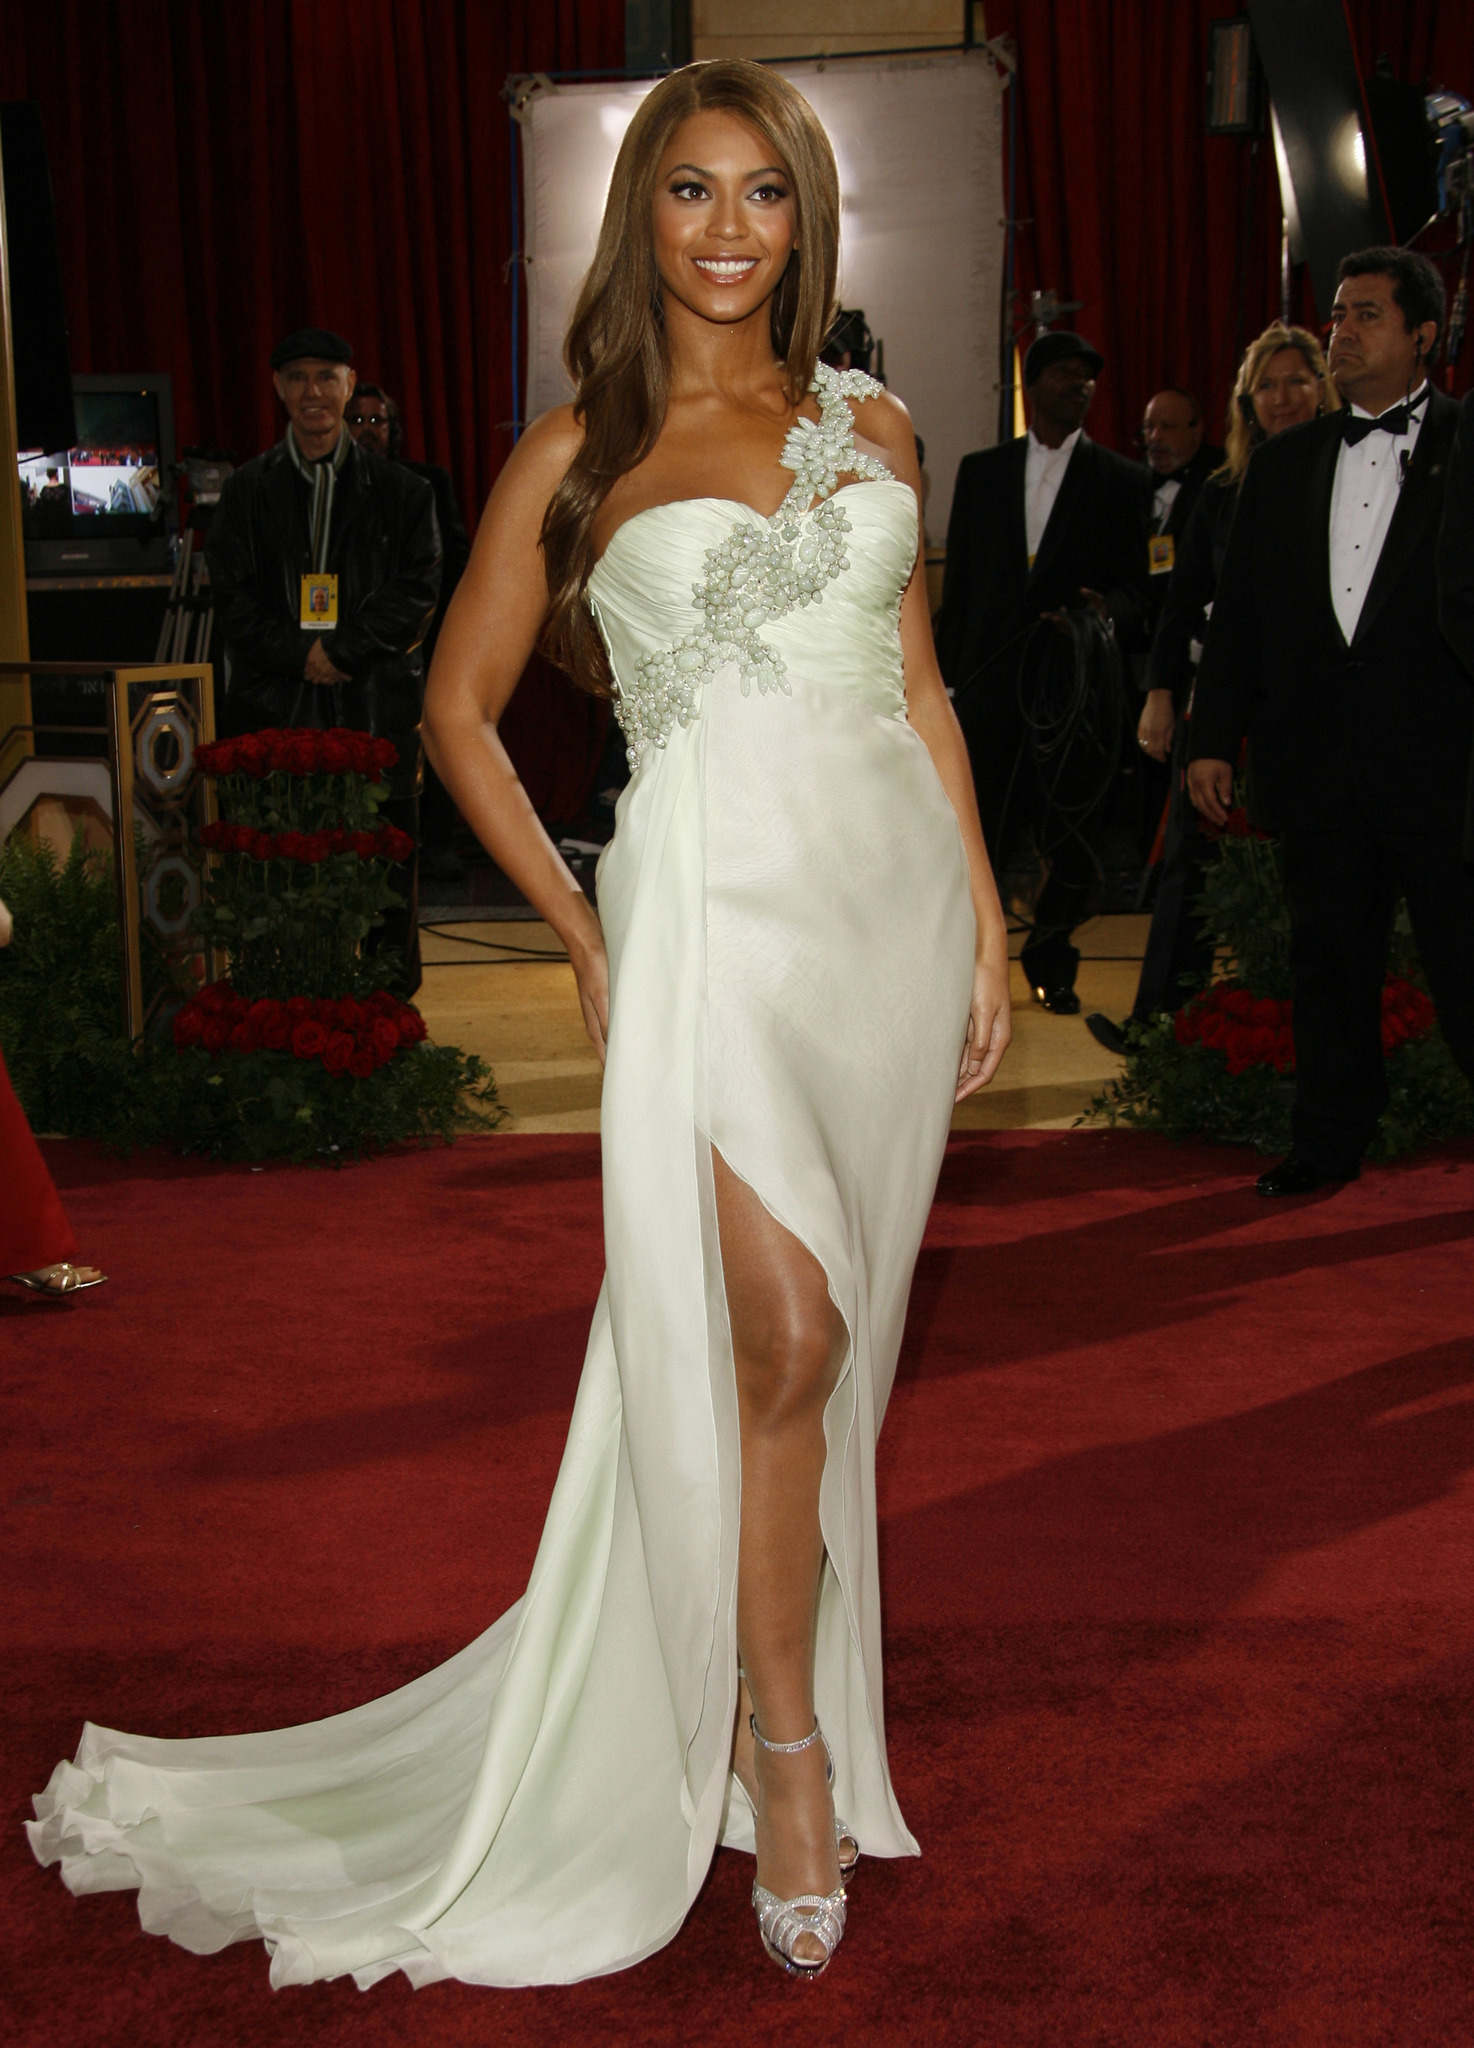 Beyoncé at an event for The 79th Annual Academy Awards (2007)